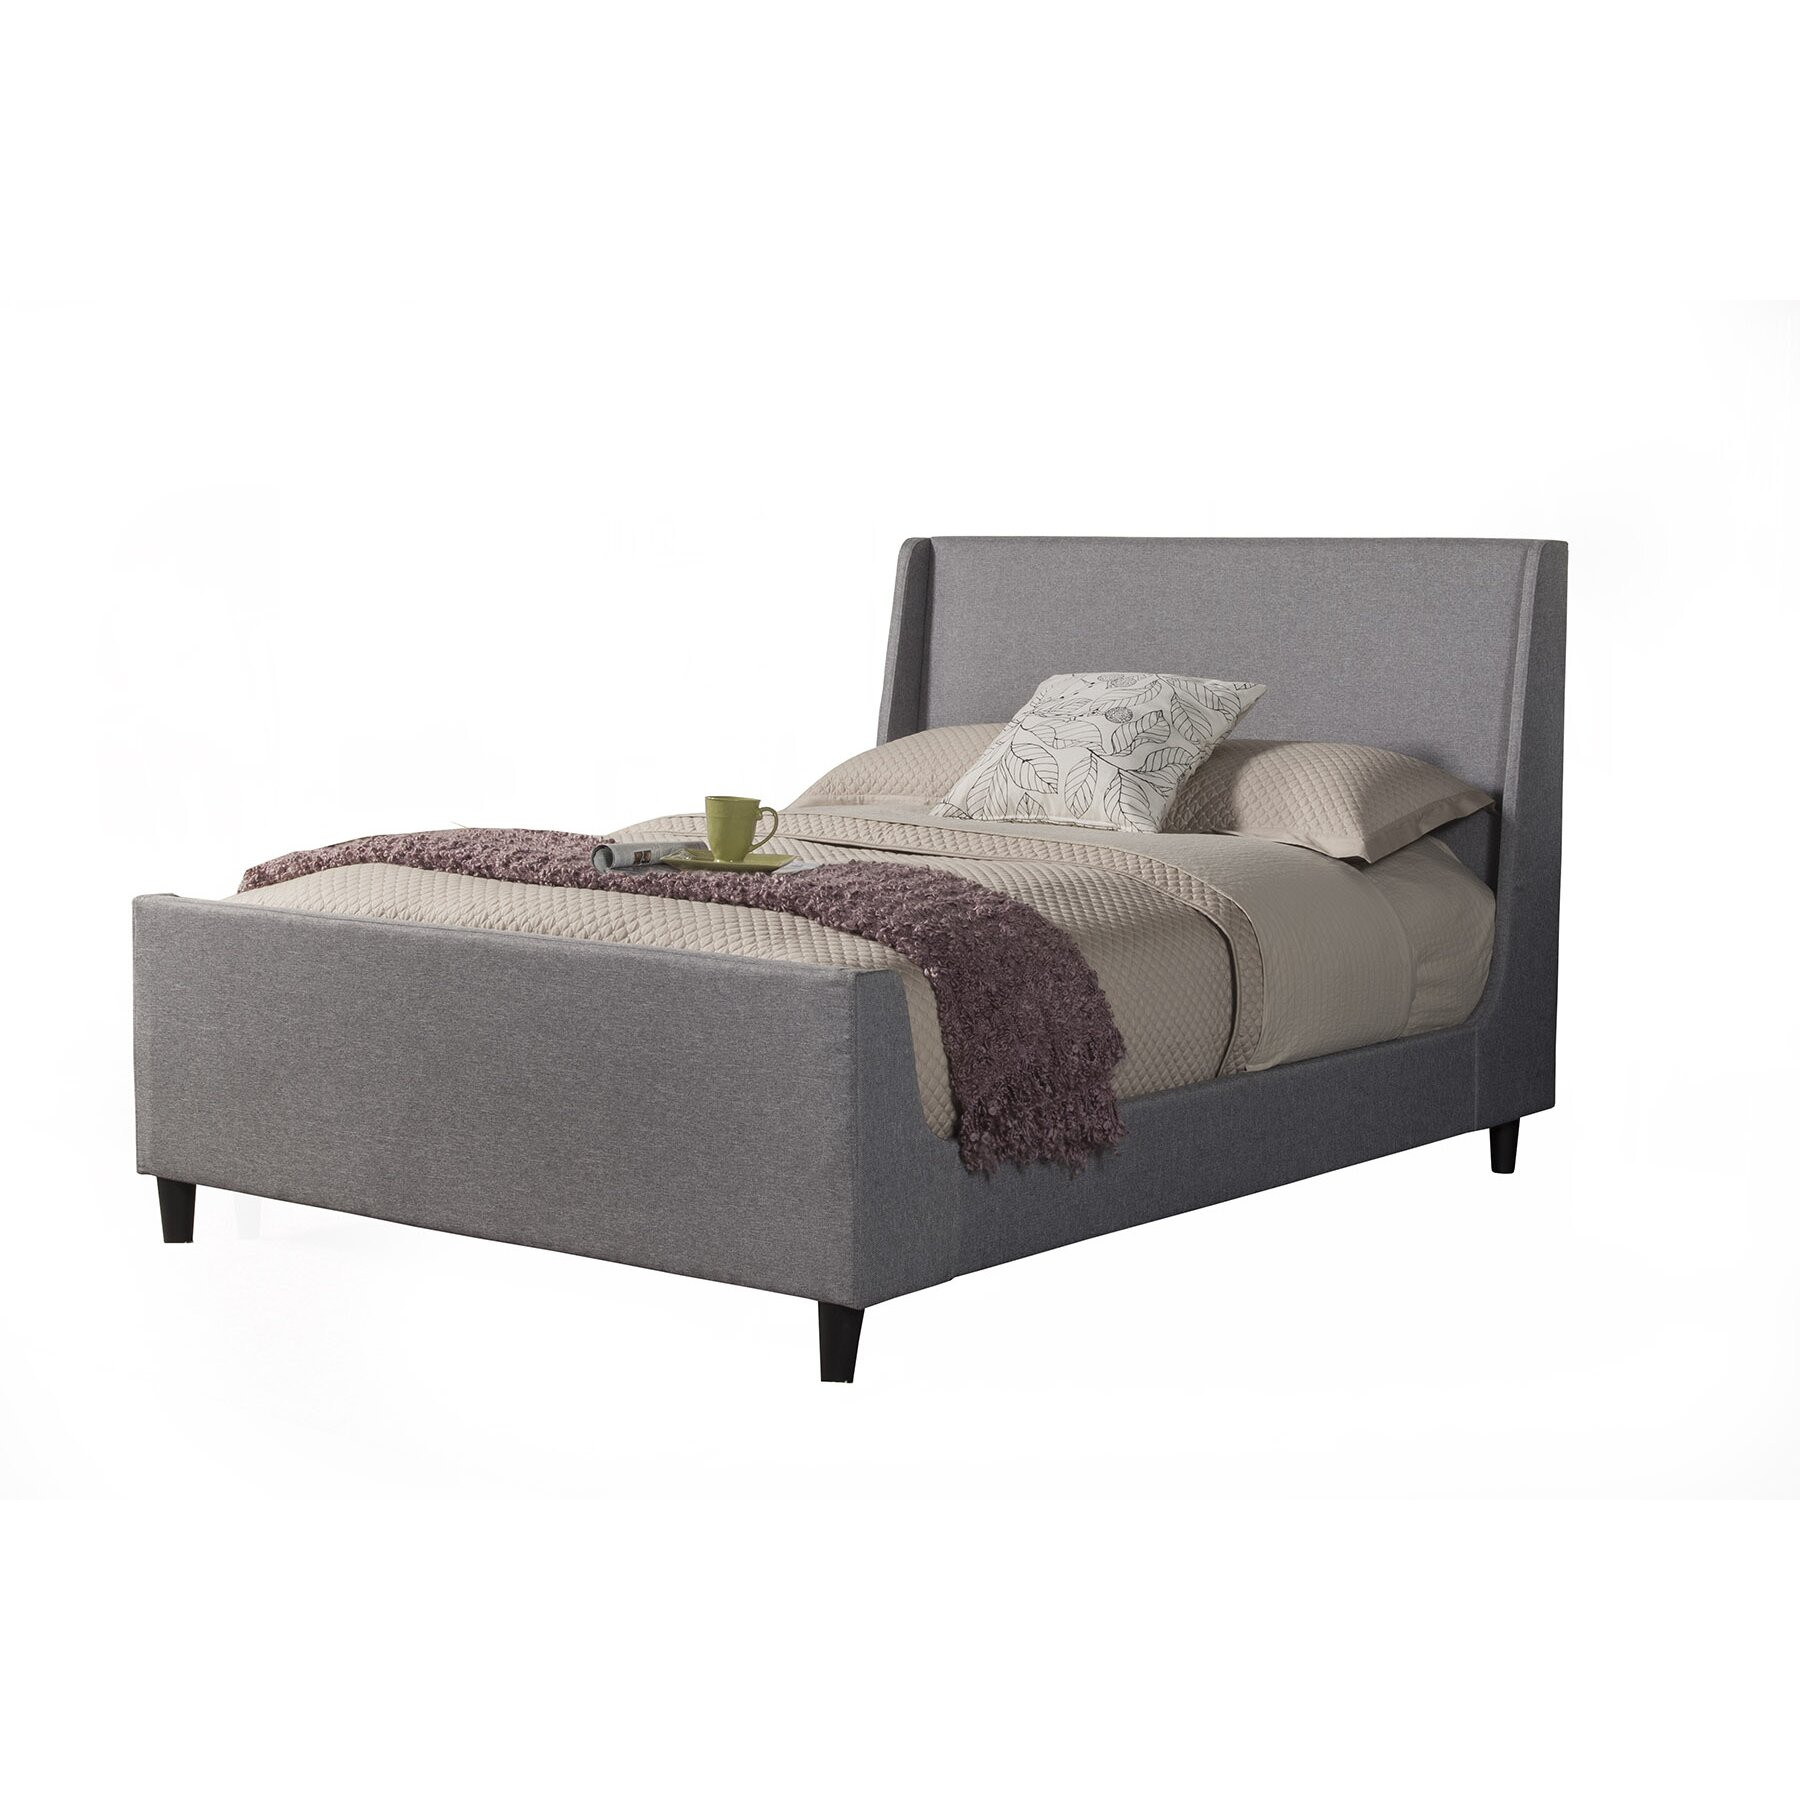 Upholstered Platform Bed : Brayden Studio Marcano Upholstered Platform Bed & Reviews  Wayfair